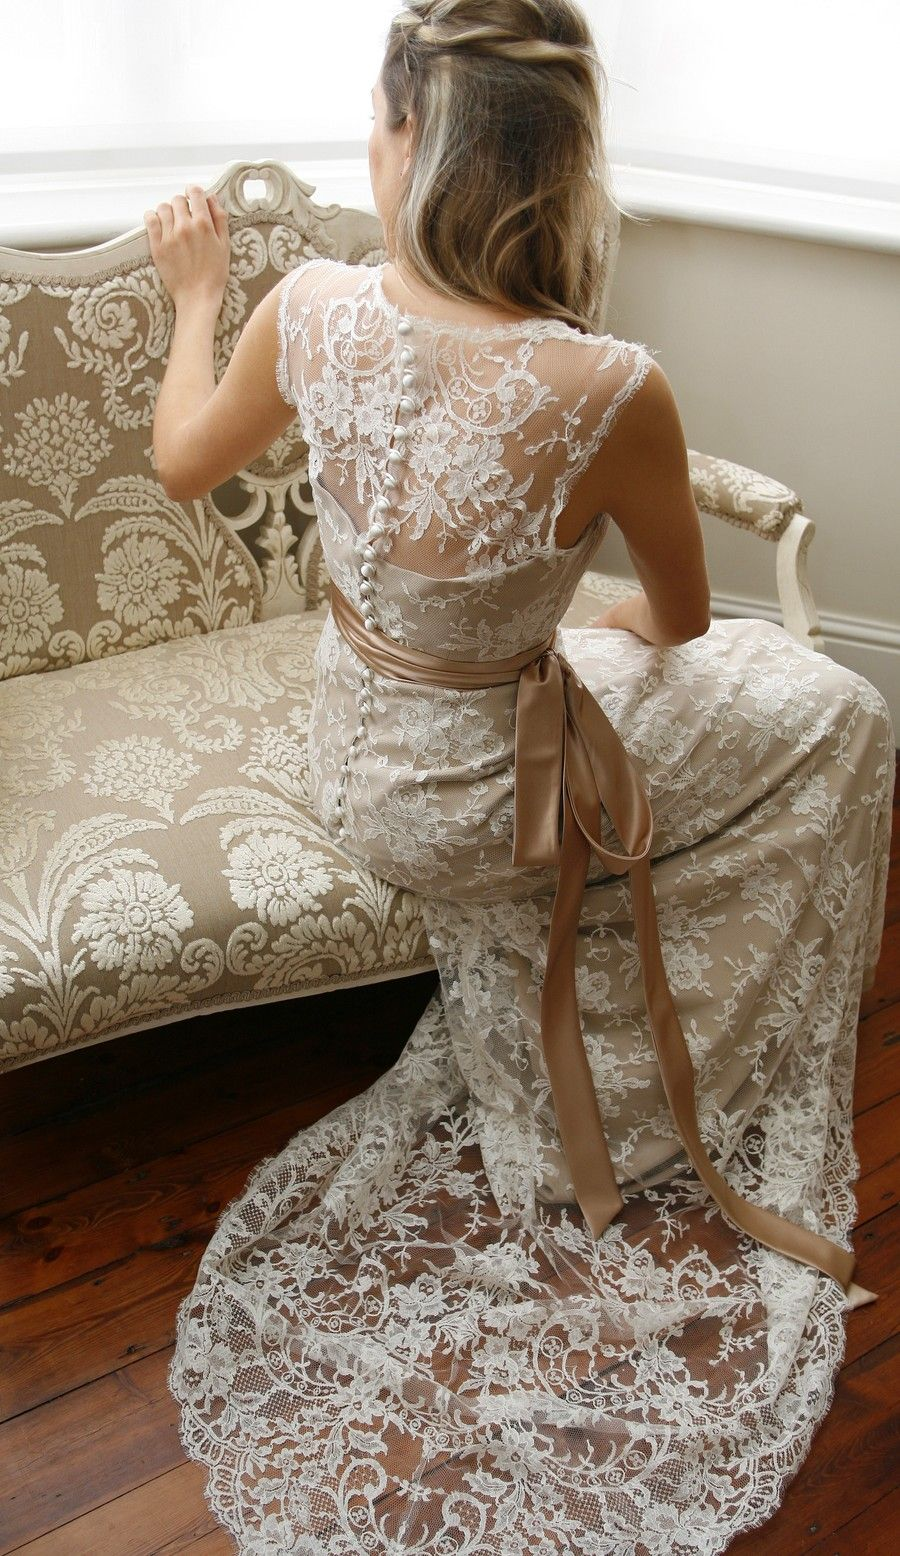 Ium in love wedding ideas pinterest vintage inspired wedding